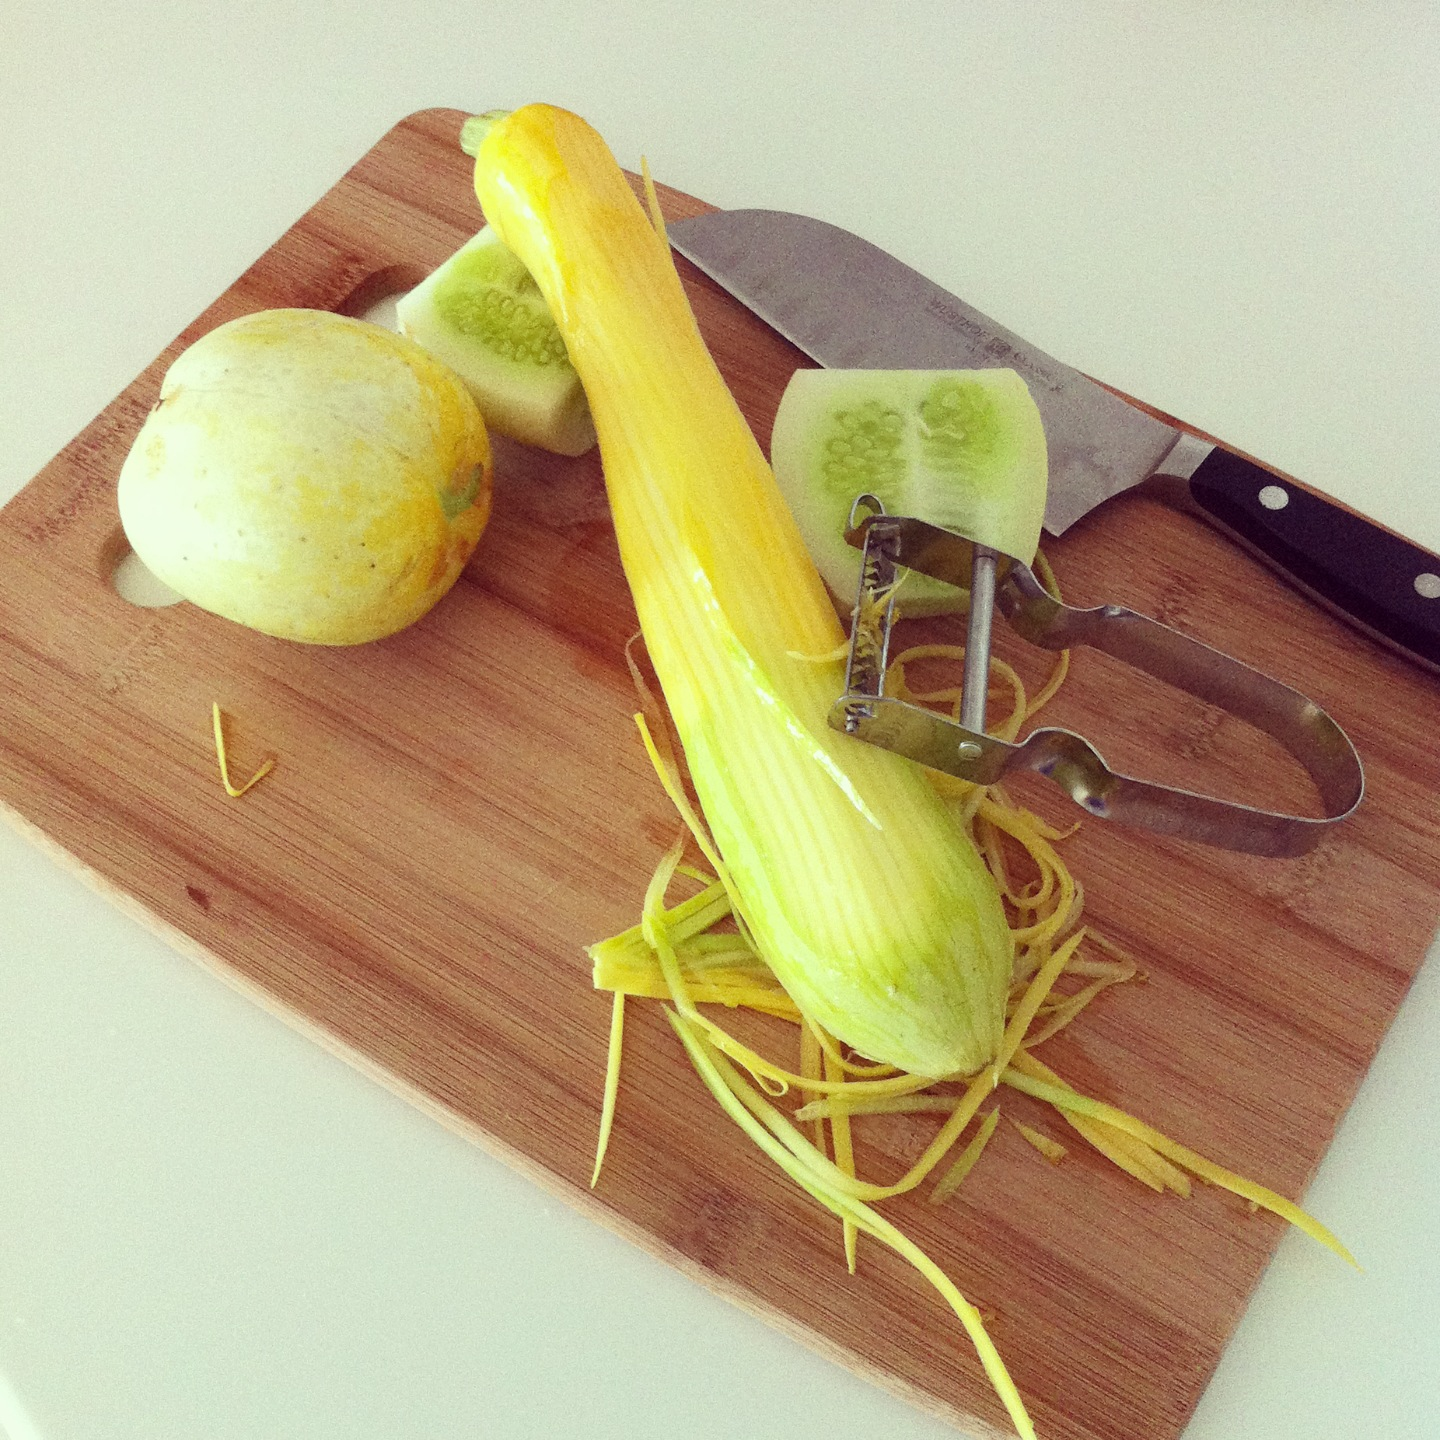 My latest kitchen gadget: a julienne peeler